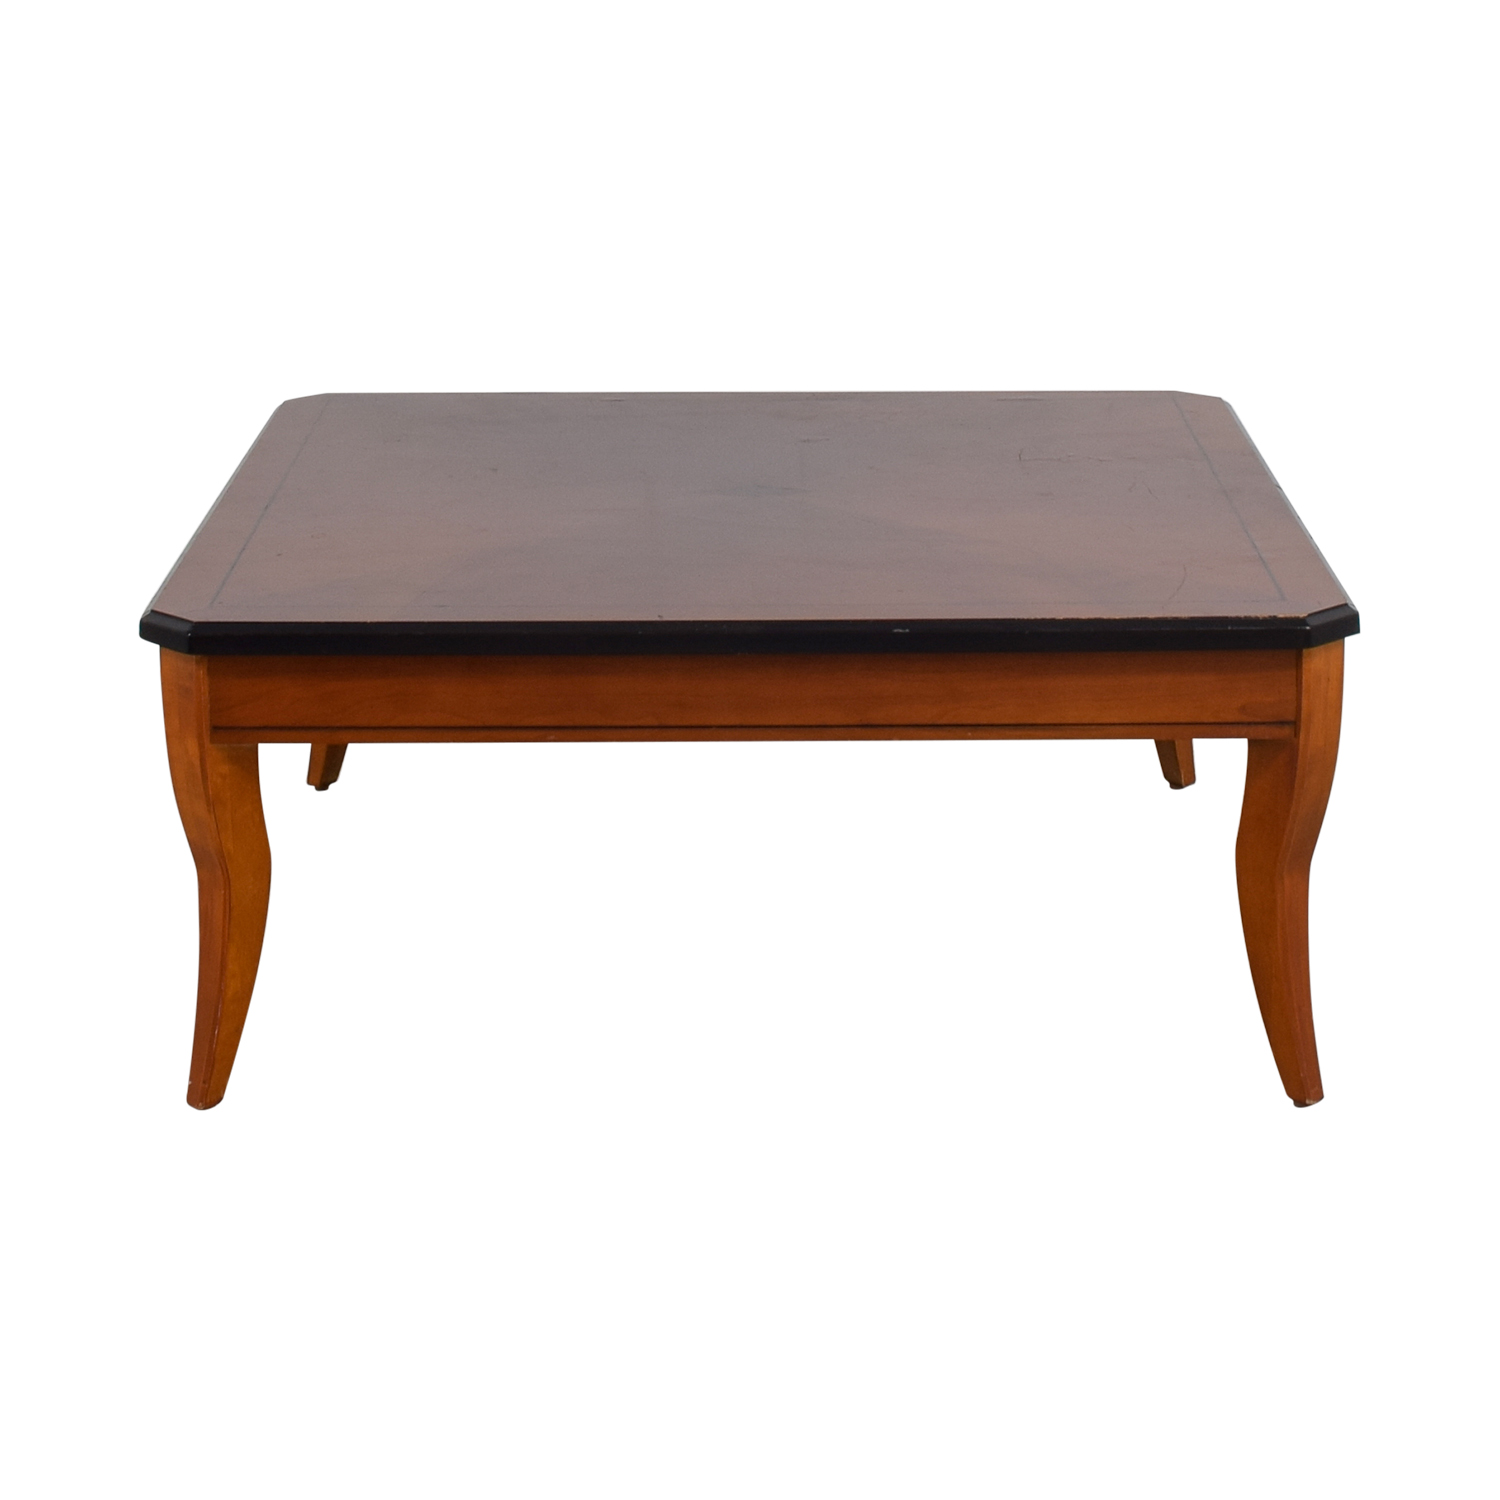 Cherry Wood Square Coffee Table / Tables